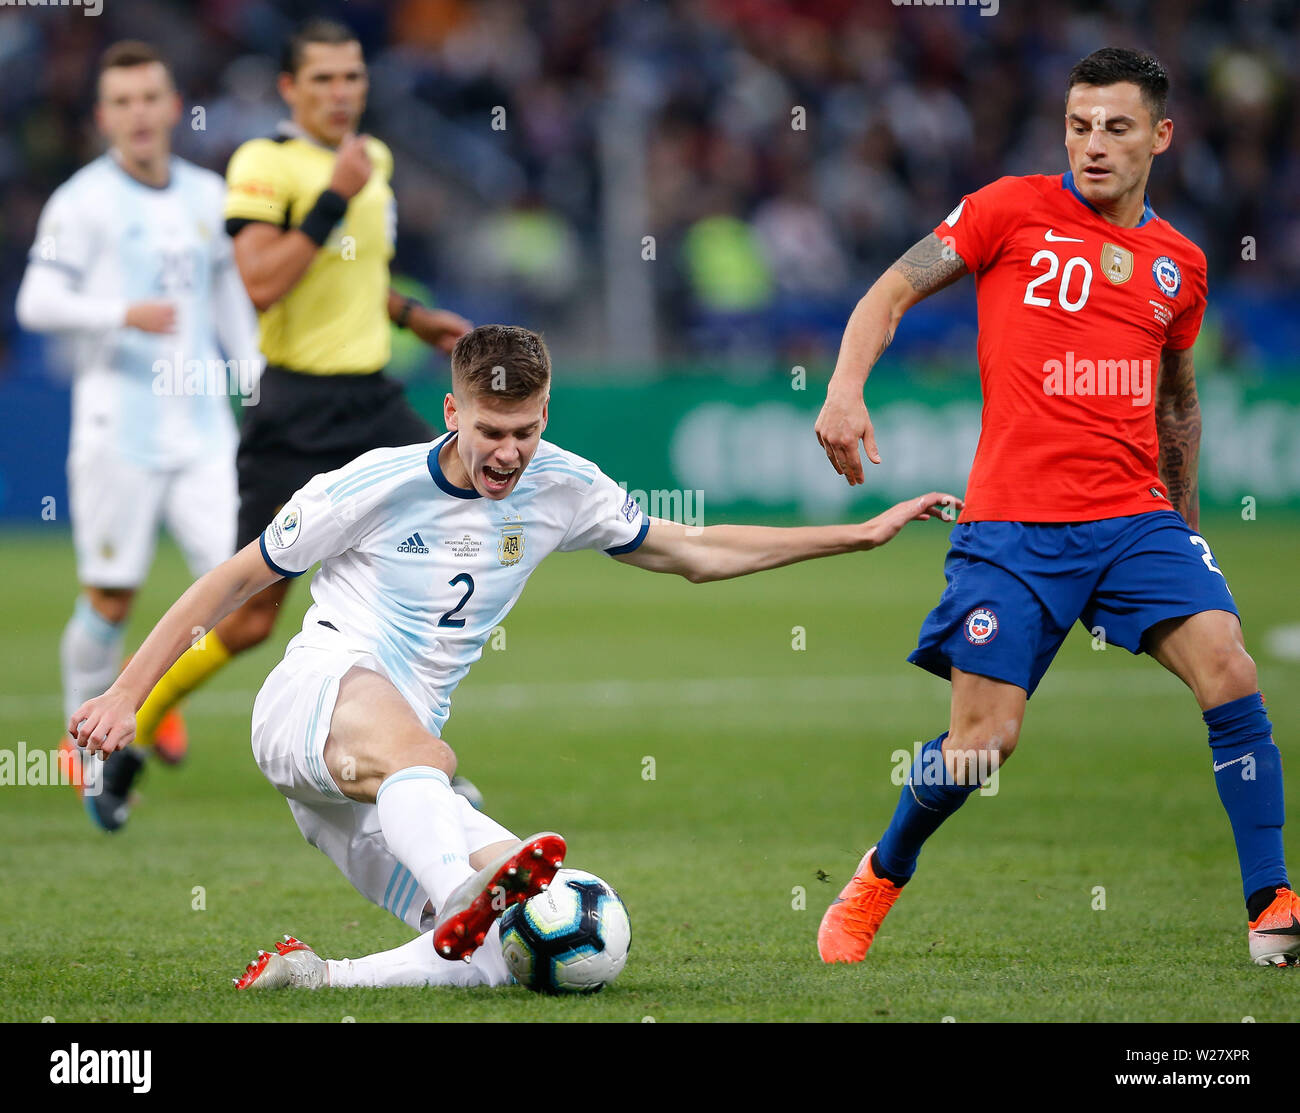 SÃO PAULO, SP - 06.07.2019: ARGENTINA VS. CHILE - Juan Foyth of Argentina is missing during a match between Argentina and Chile, valid for the third place match of the Copa América 2019, held this Saturday (06) at the Corinthians Arena in São Paulo, SP. (Photo: Marcelo Machado de Melo/Fotoarena) - Stock Image